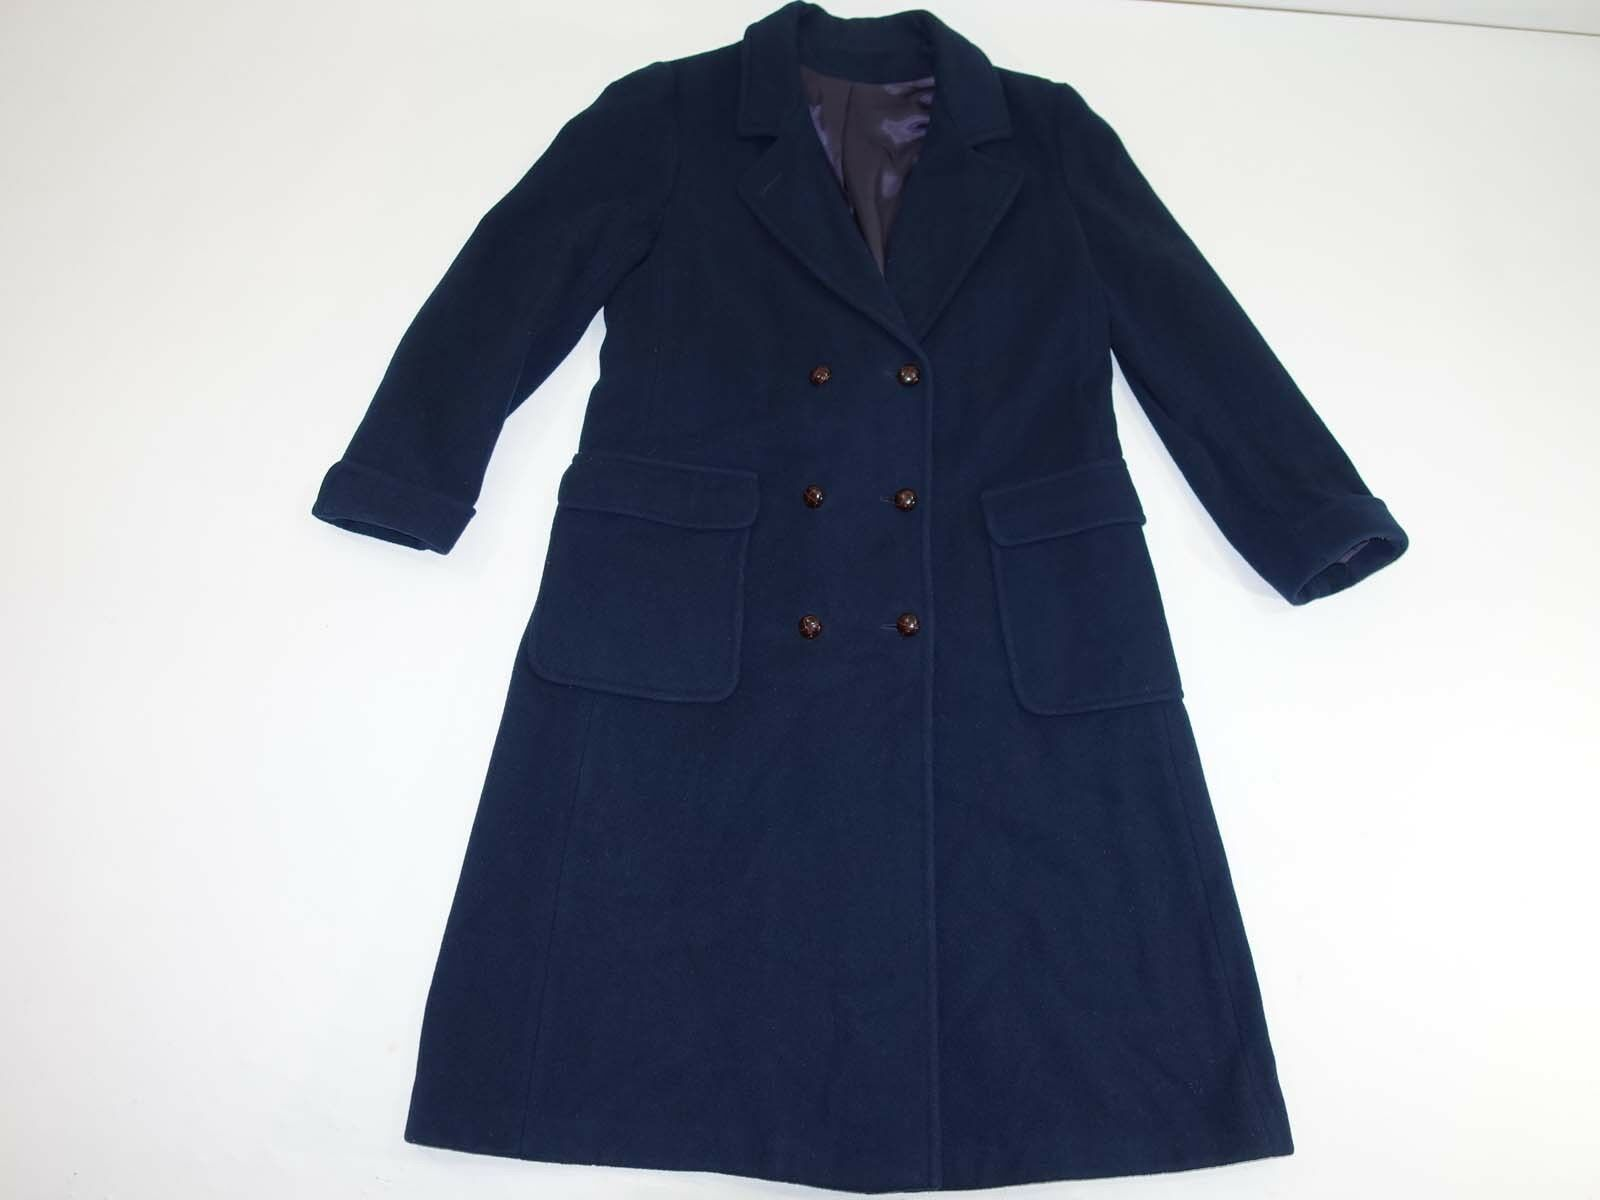 Forecaster of Boston Women's Double Breasted Over Coat Size 13   14 Navy bluee